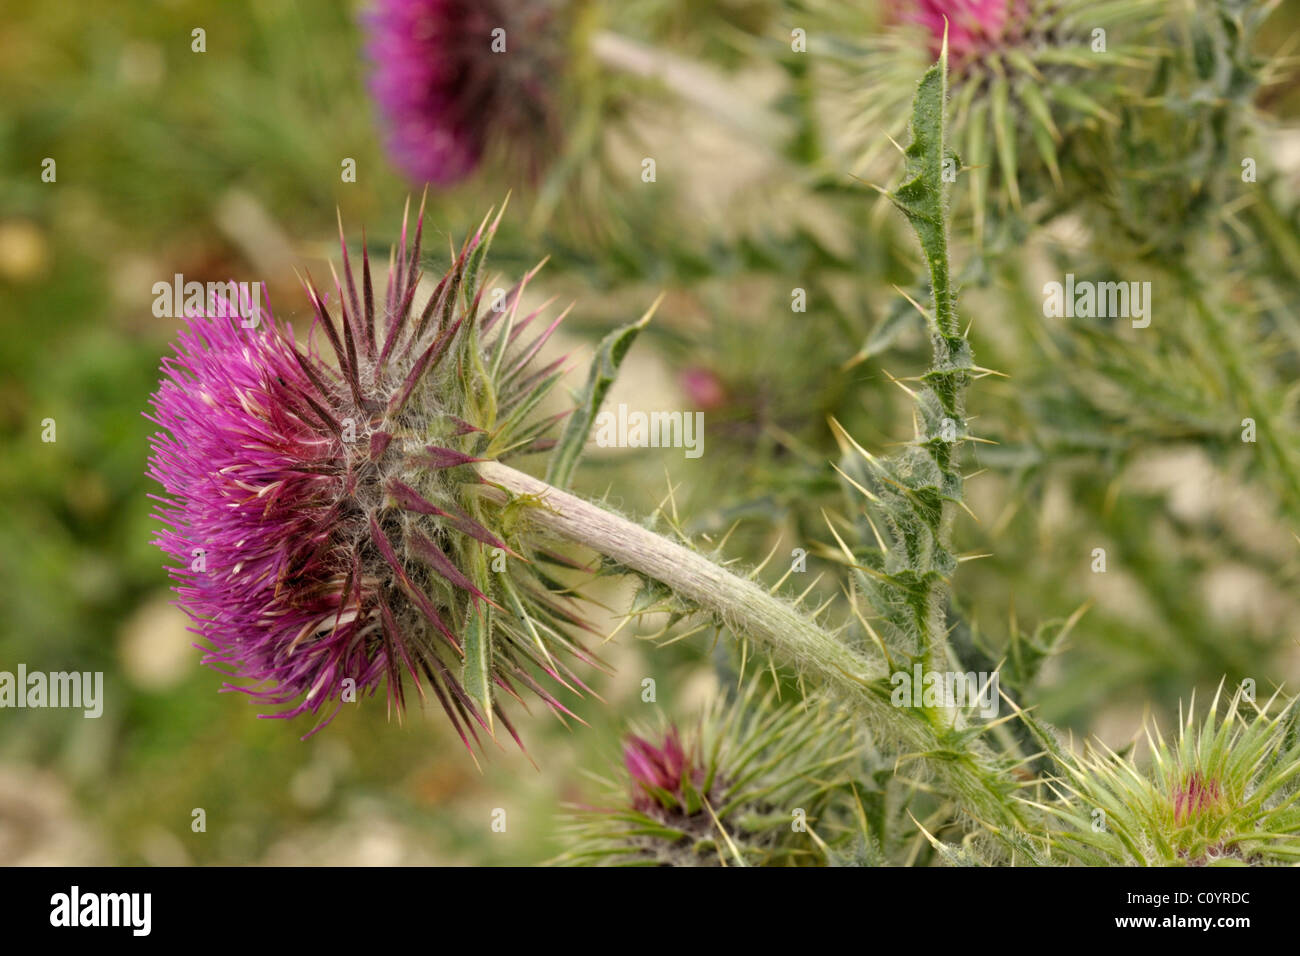 Musk Thistle, carduus nutans - Stock Image